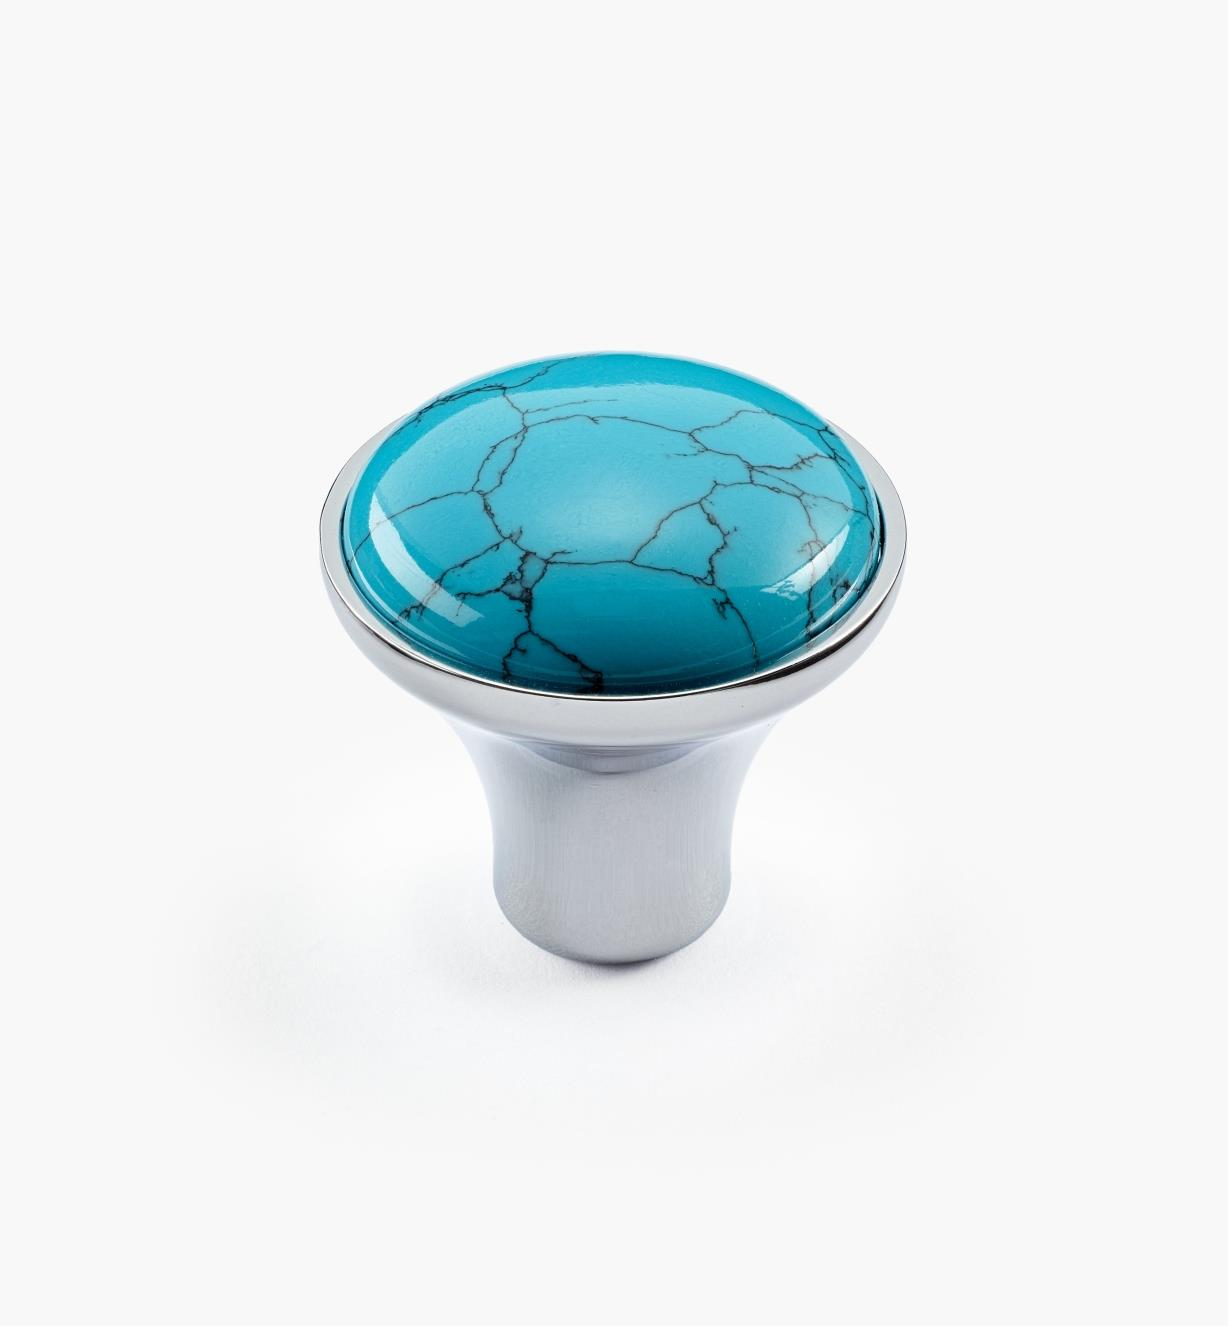 01A3622 - Large Turquoise Gemstone Knob, Polished Chrome base